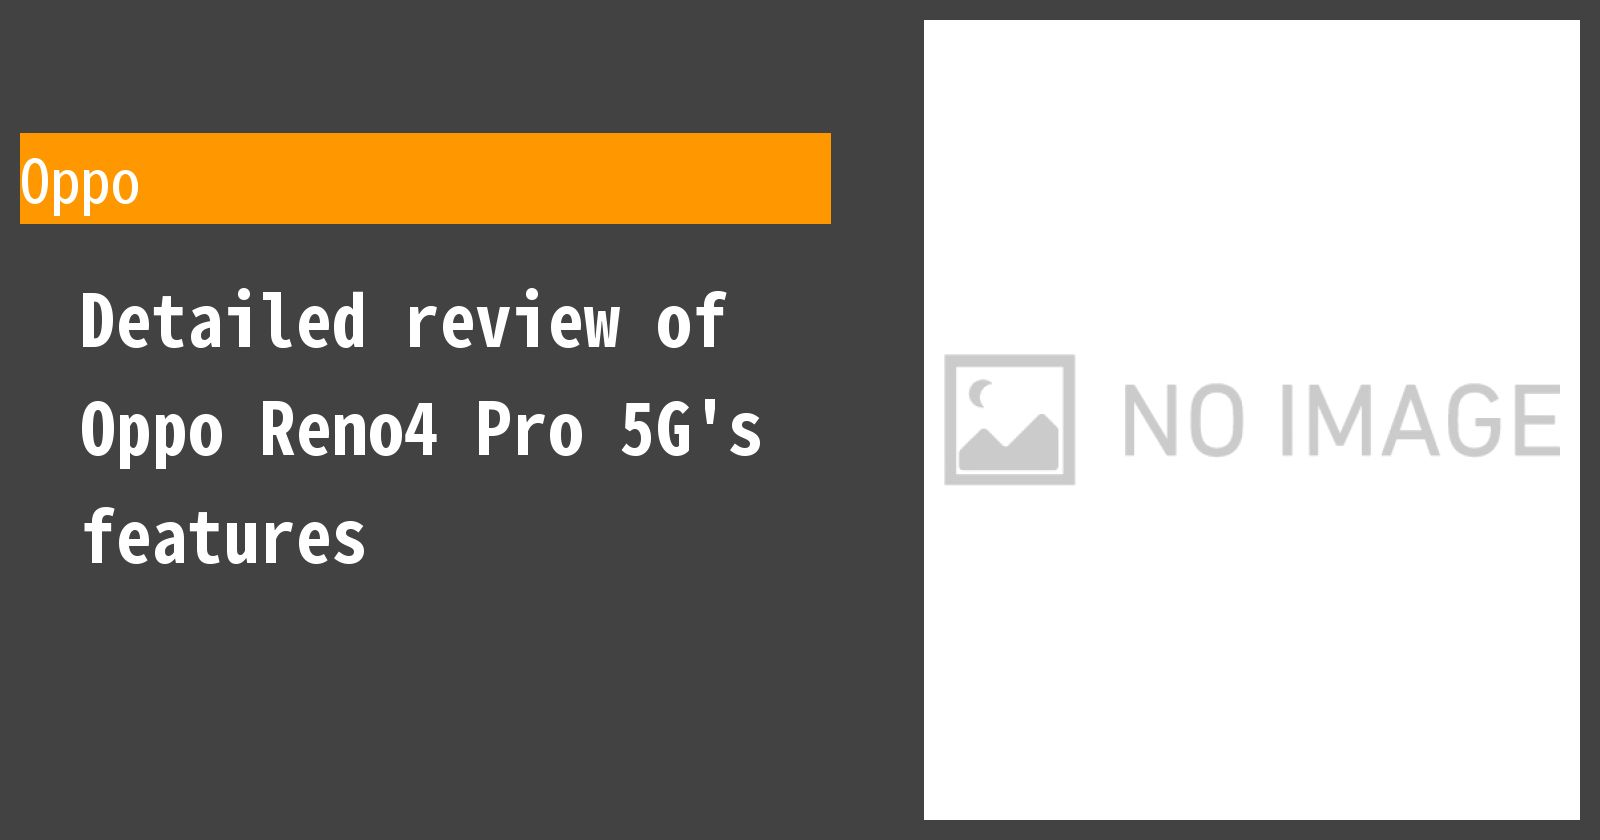 Detailed review of Oppo Reno4 Pro 5G's features